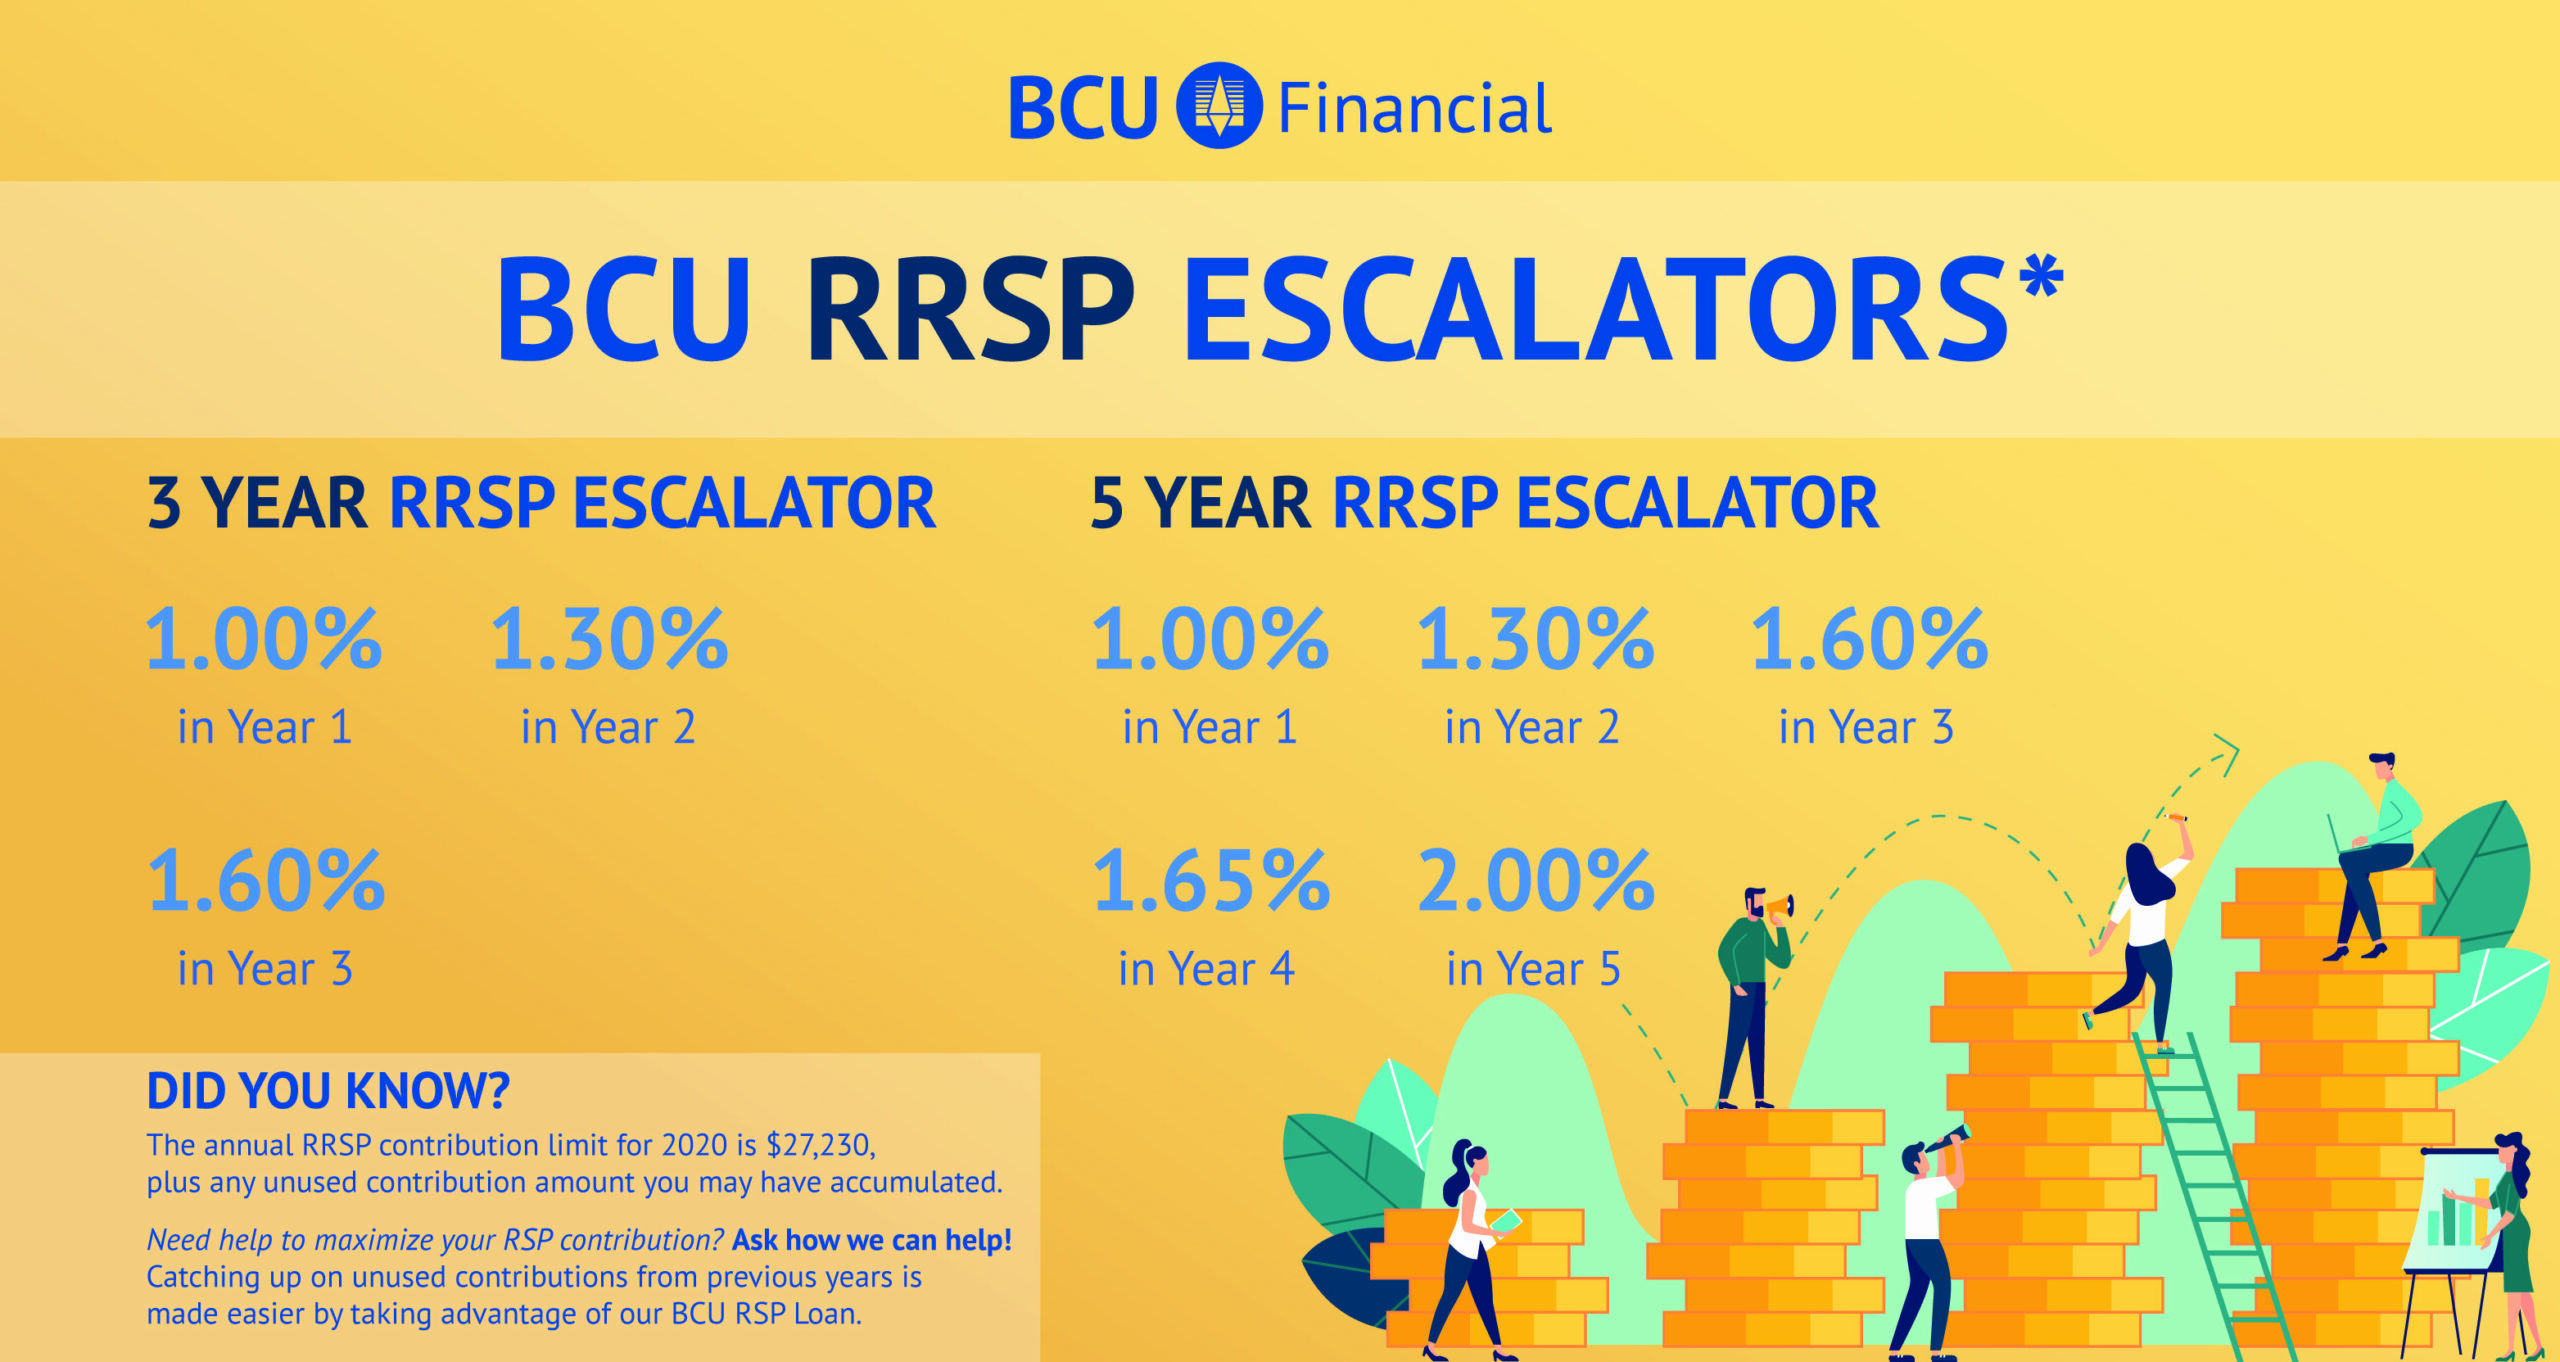 RRSP Escalator 2021